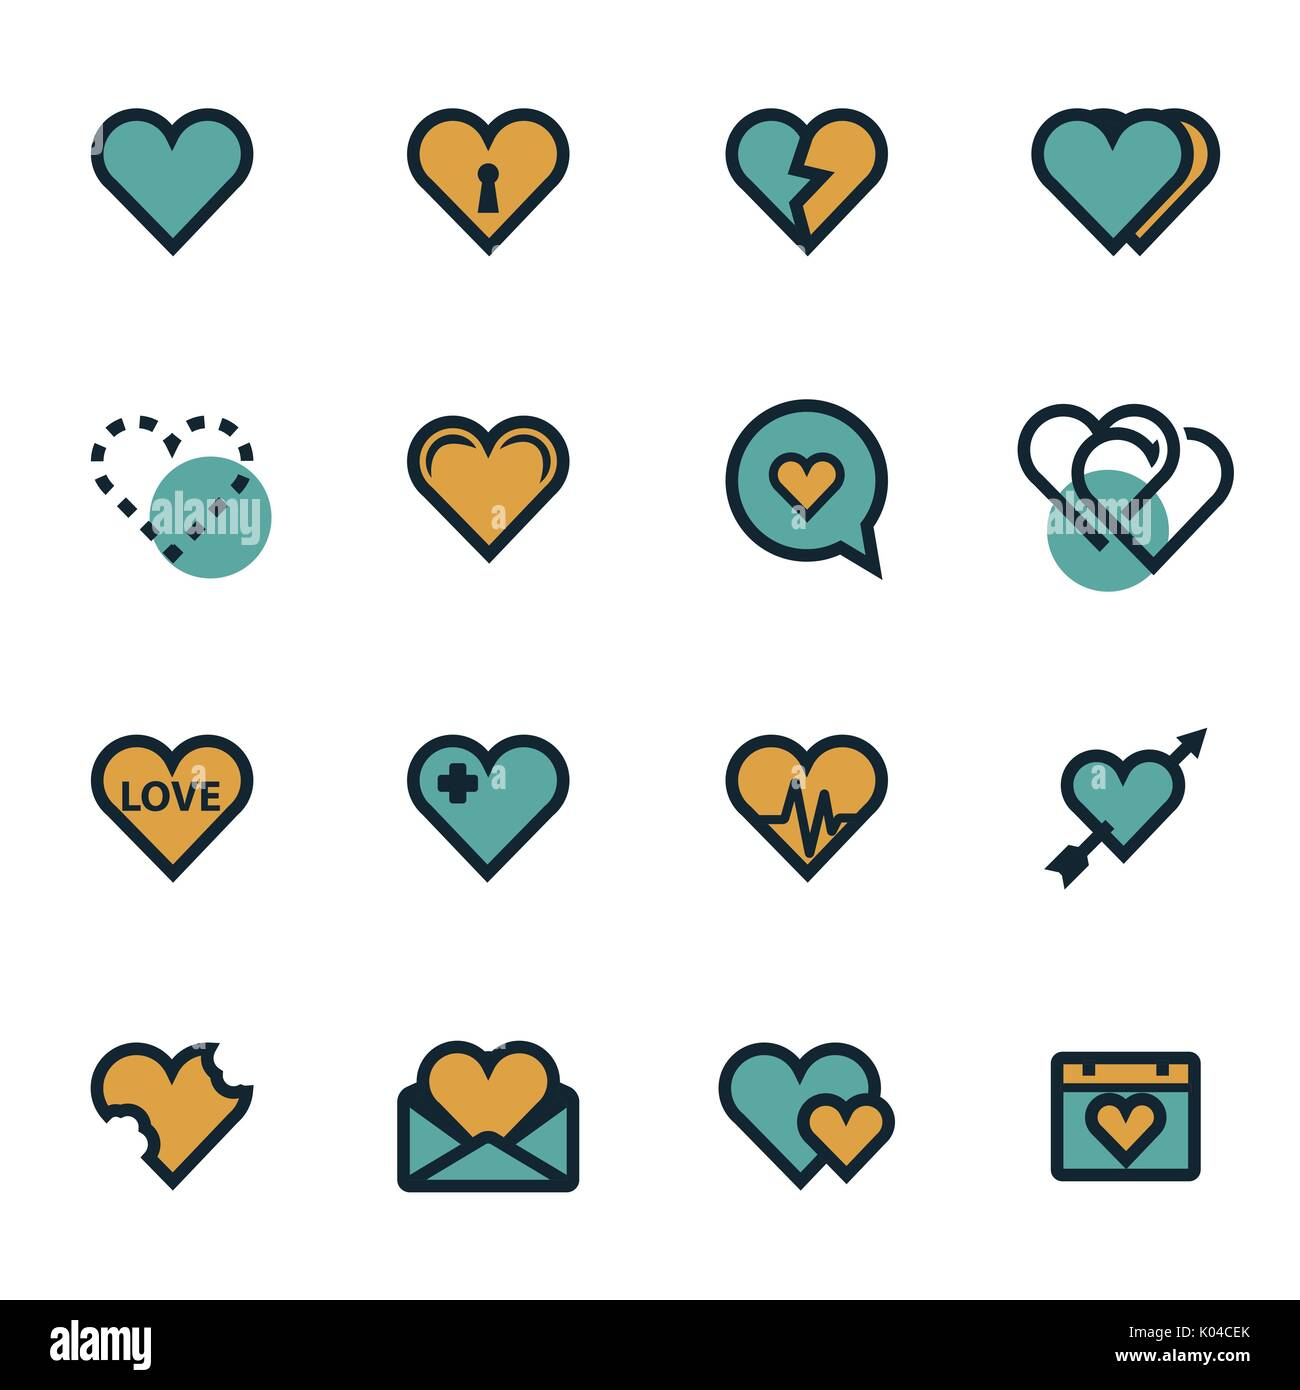 Vector flat heart icons set - Stock Image